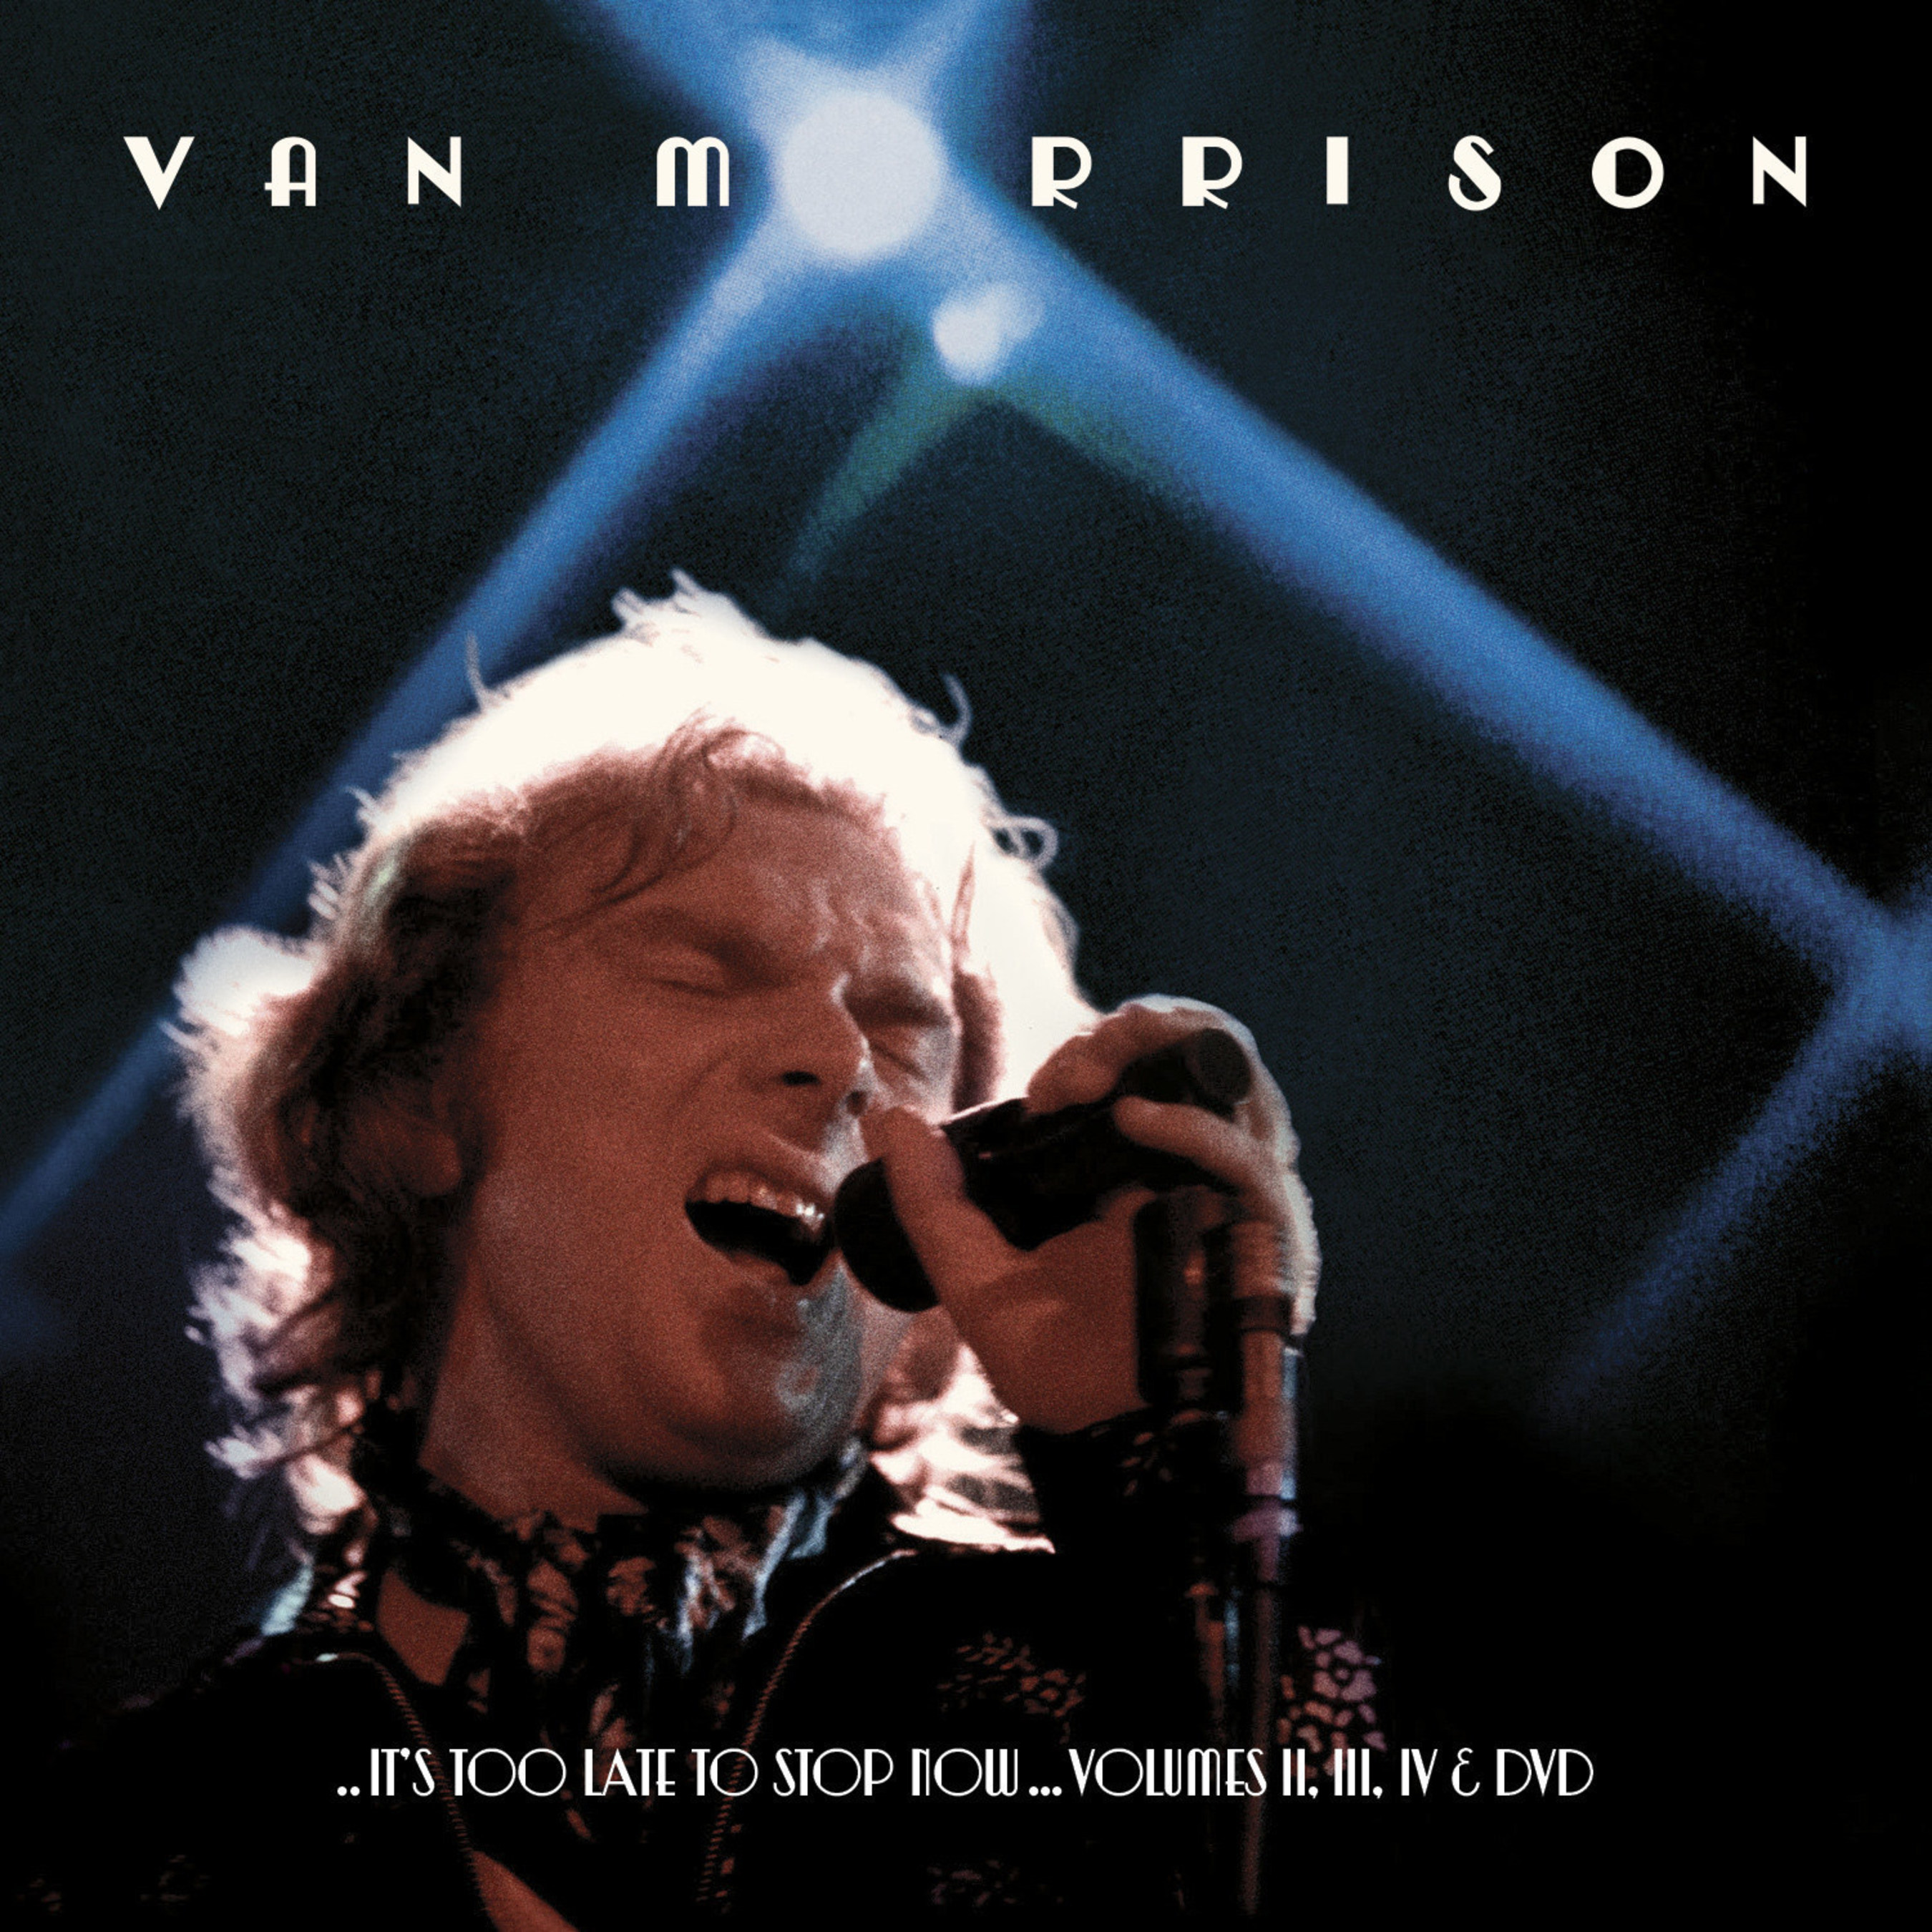 Legacy Recordings Announces Release of Van Morrison's ..IT'S TOO LATE TO STOP NOW...VOLUMES II, III, IV & DVD, A Monumental Collection of Previously Unavailable Live Pe